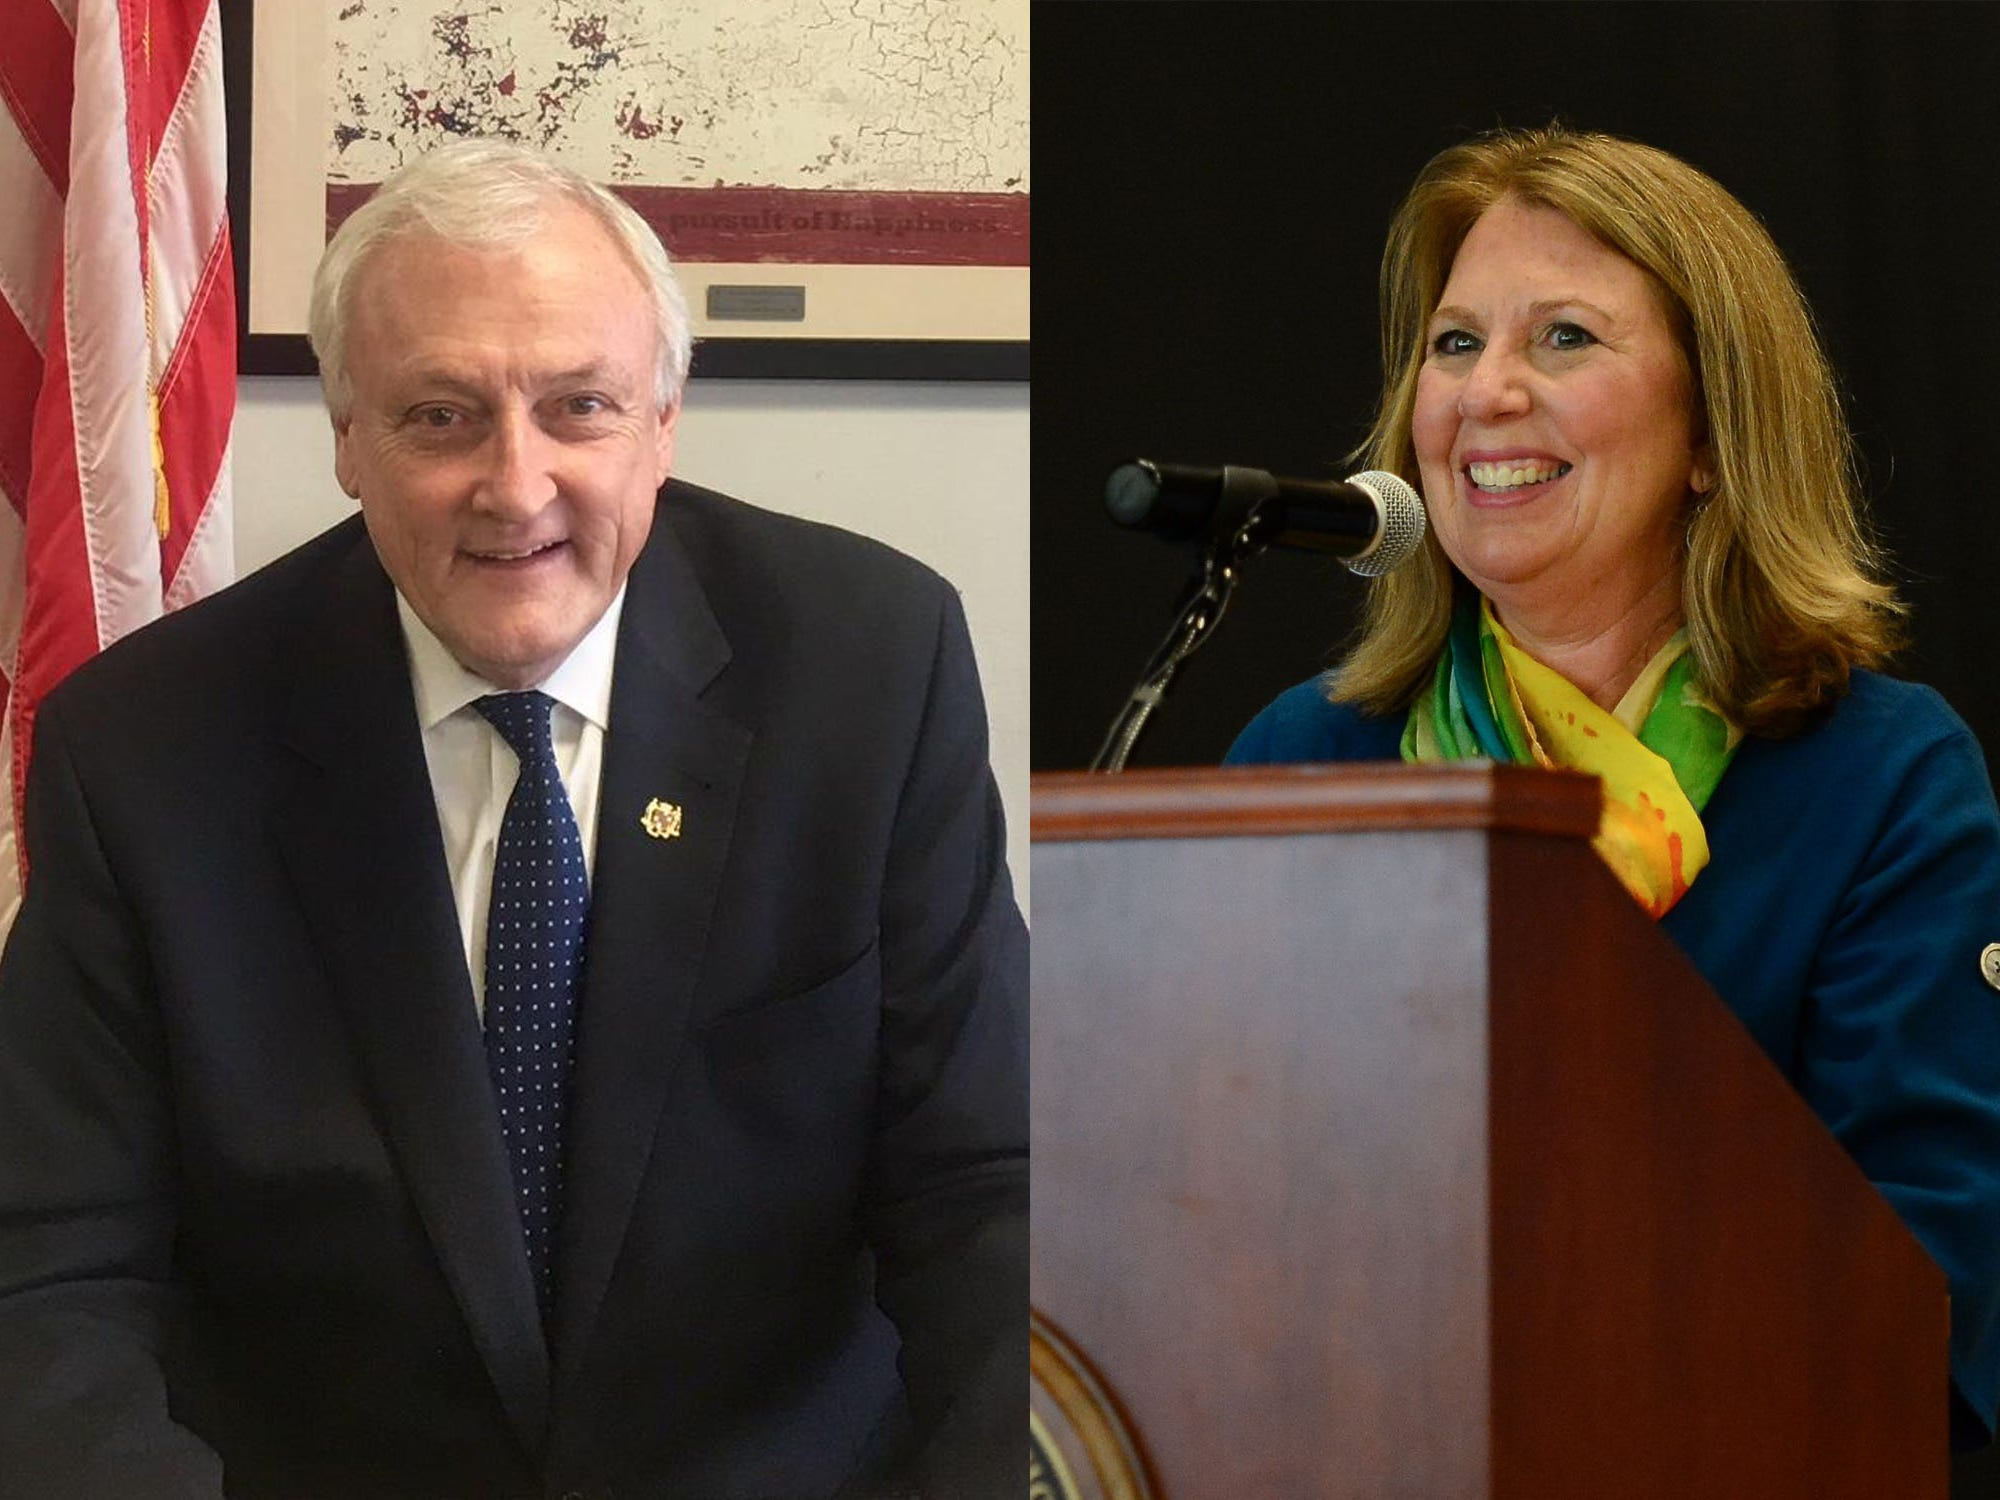 State Senate election: Mathias and Carozza battle for highly competitive District 38 seat